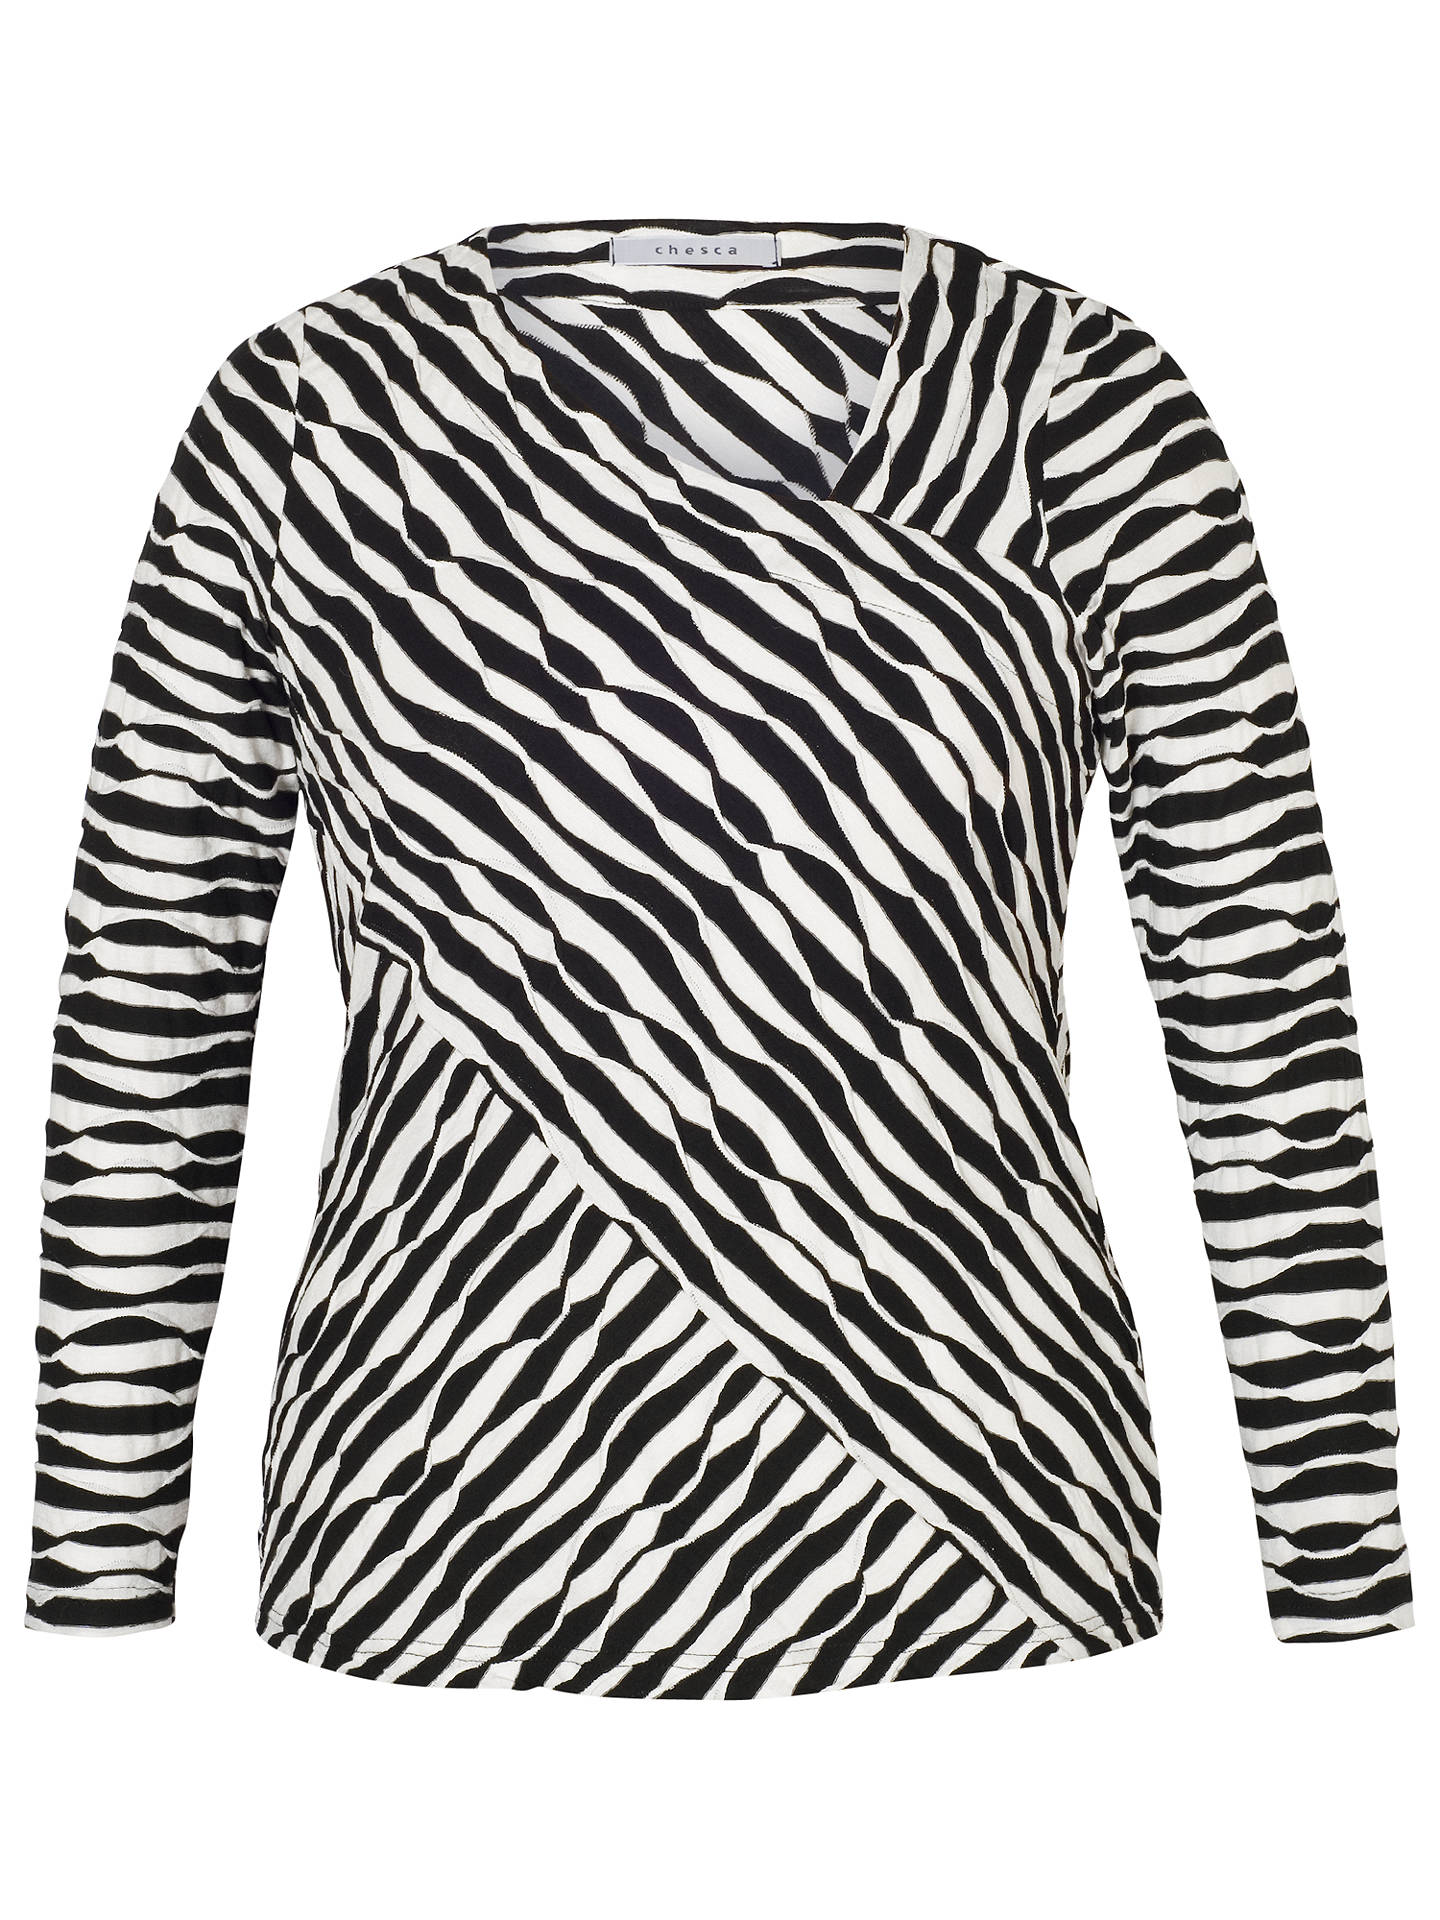 BuyChesca Wavy Asymmetric Top, Black/Cream, 12-14 Online at johnlewis.com